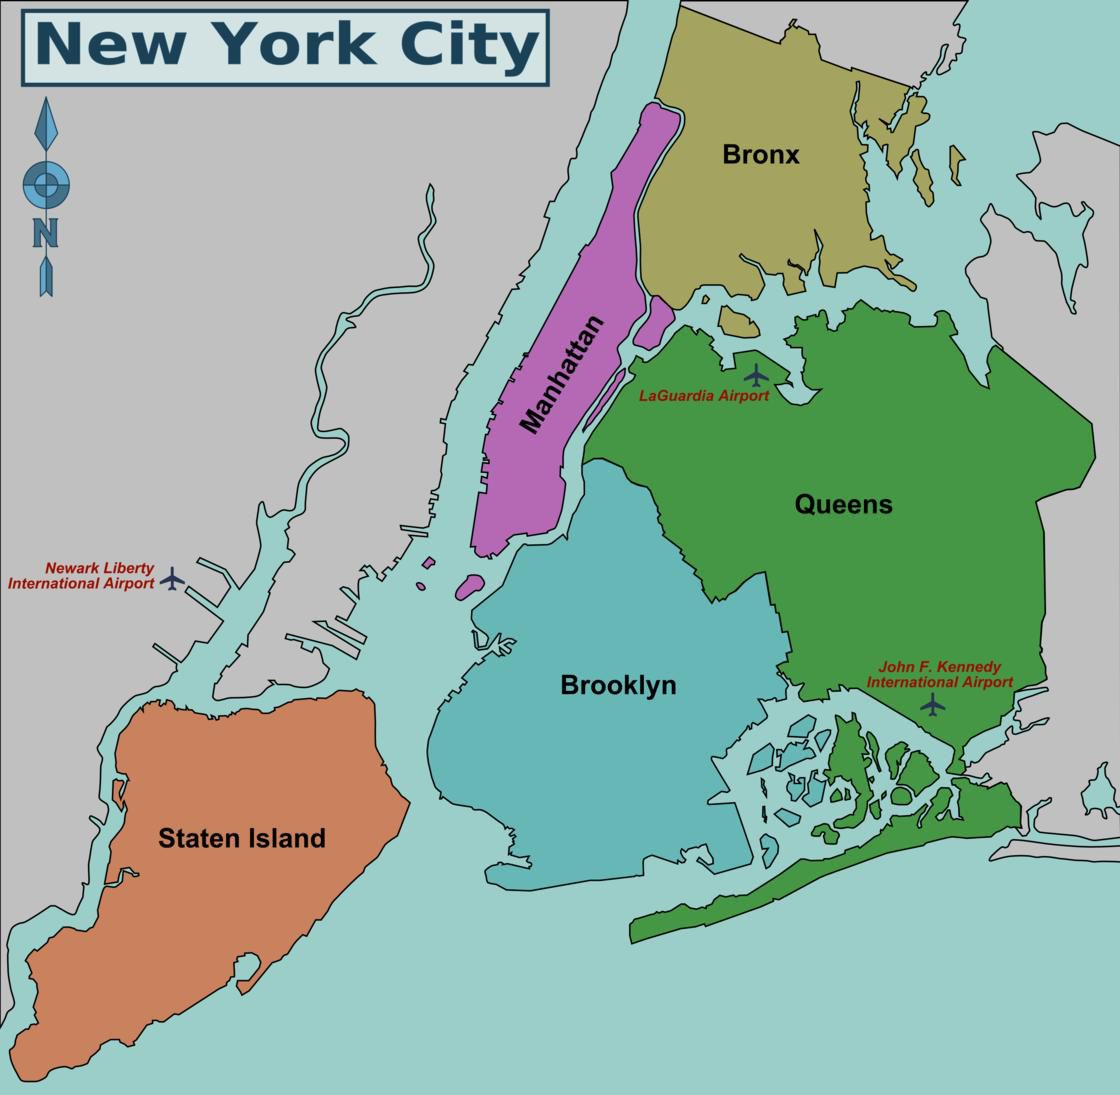 Carte des quartiers et arrondissements de New York